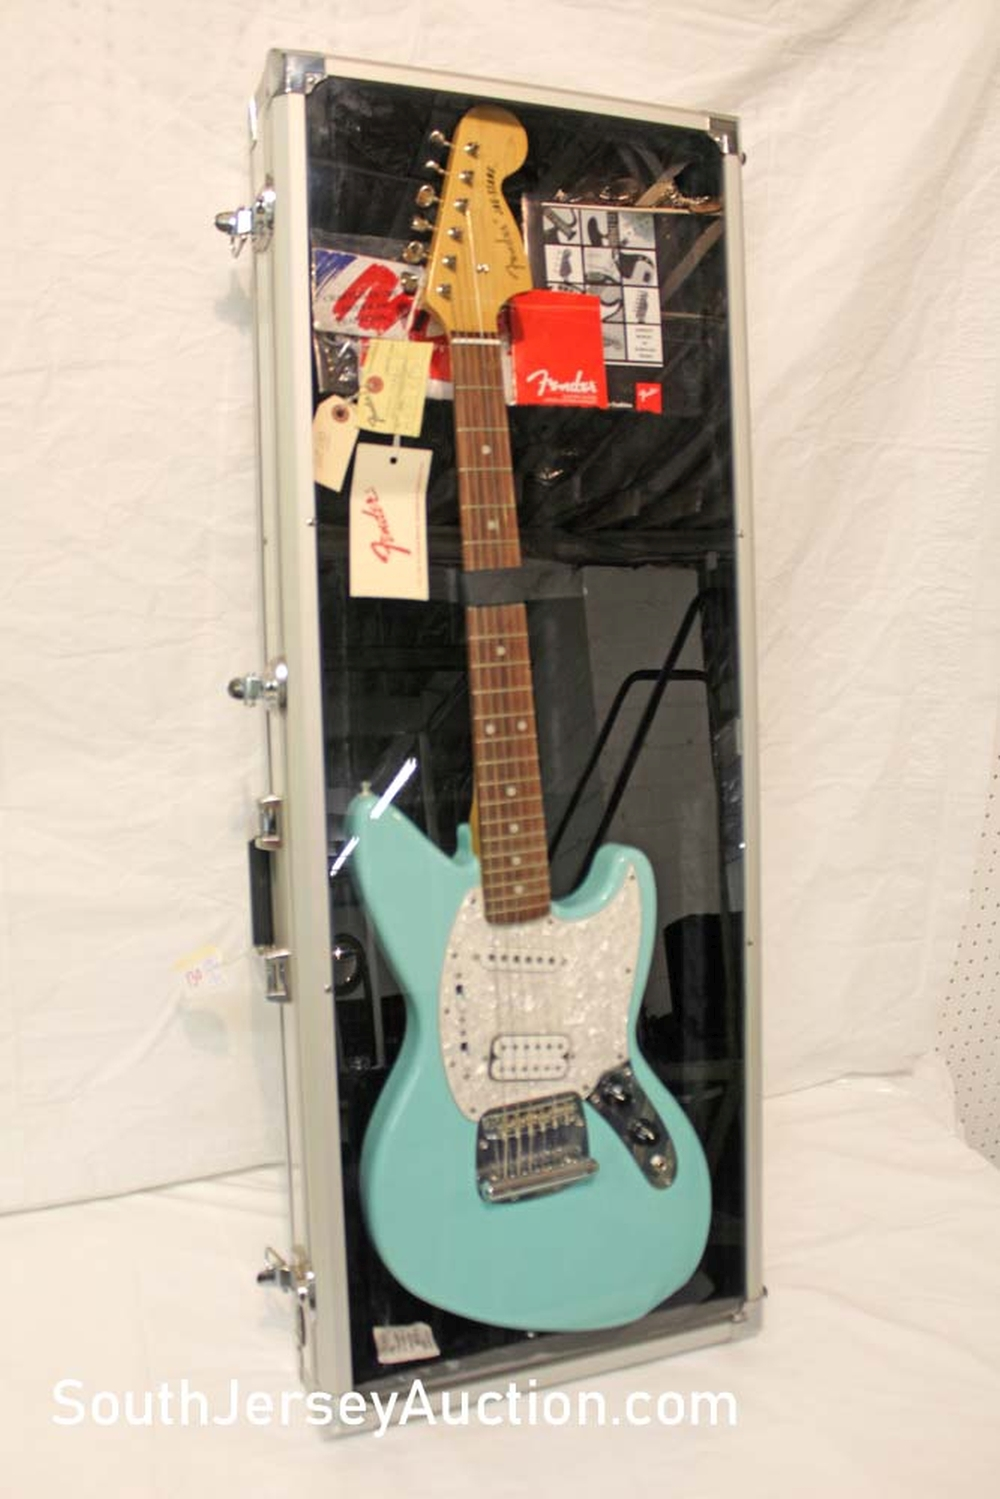 1997? NEW Fender Jag Stang Kurt Cobain Sonic Blue Color guitar, Never Been Played, All the Case Candy, in Aluminum Display carrying case, all original, with paperwork, crafted  in Japan, s/n A005079 excellent condition